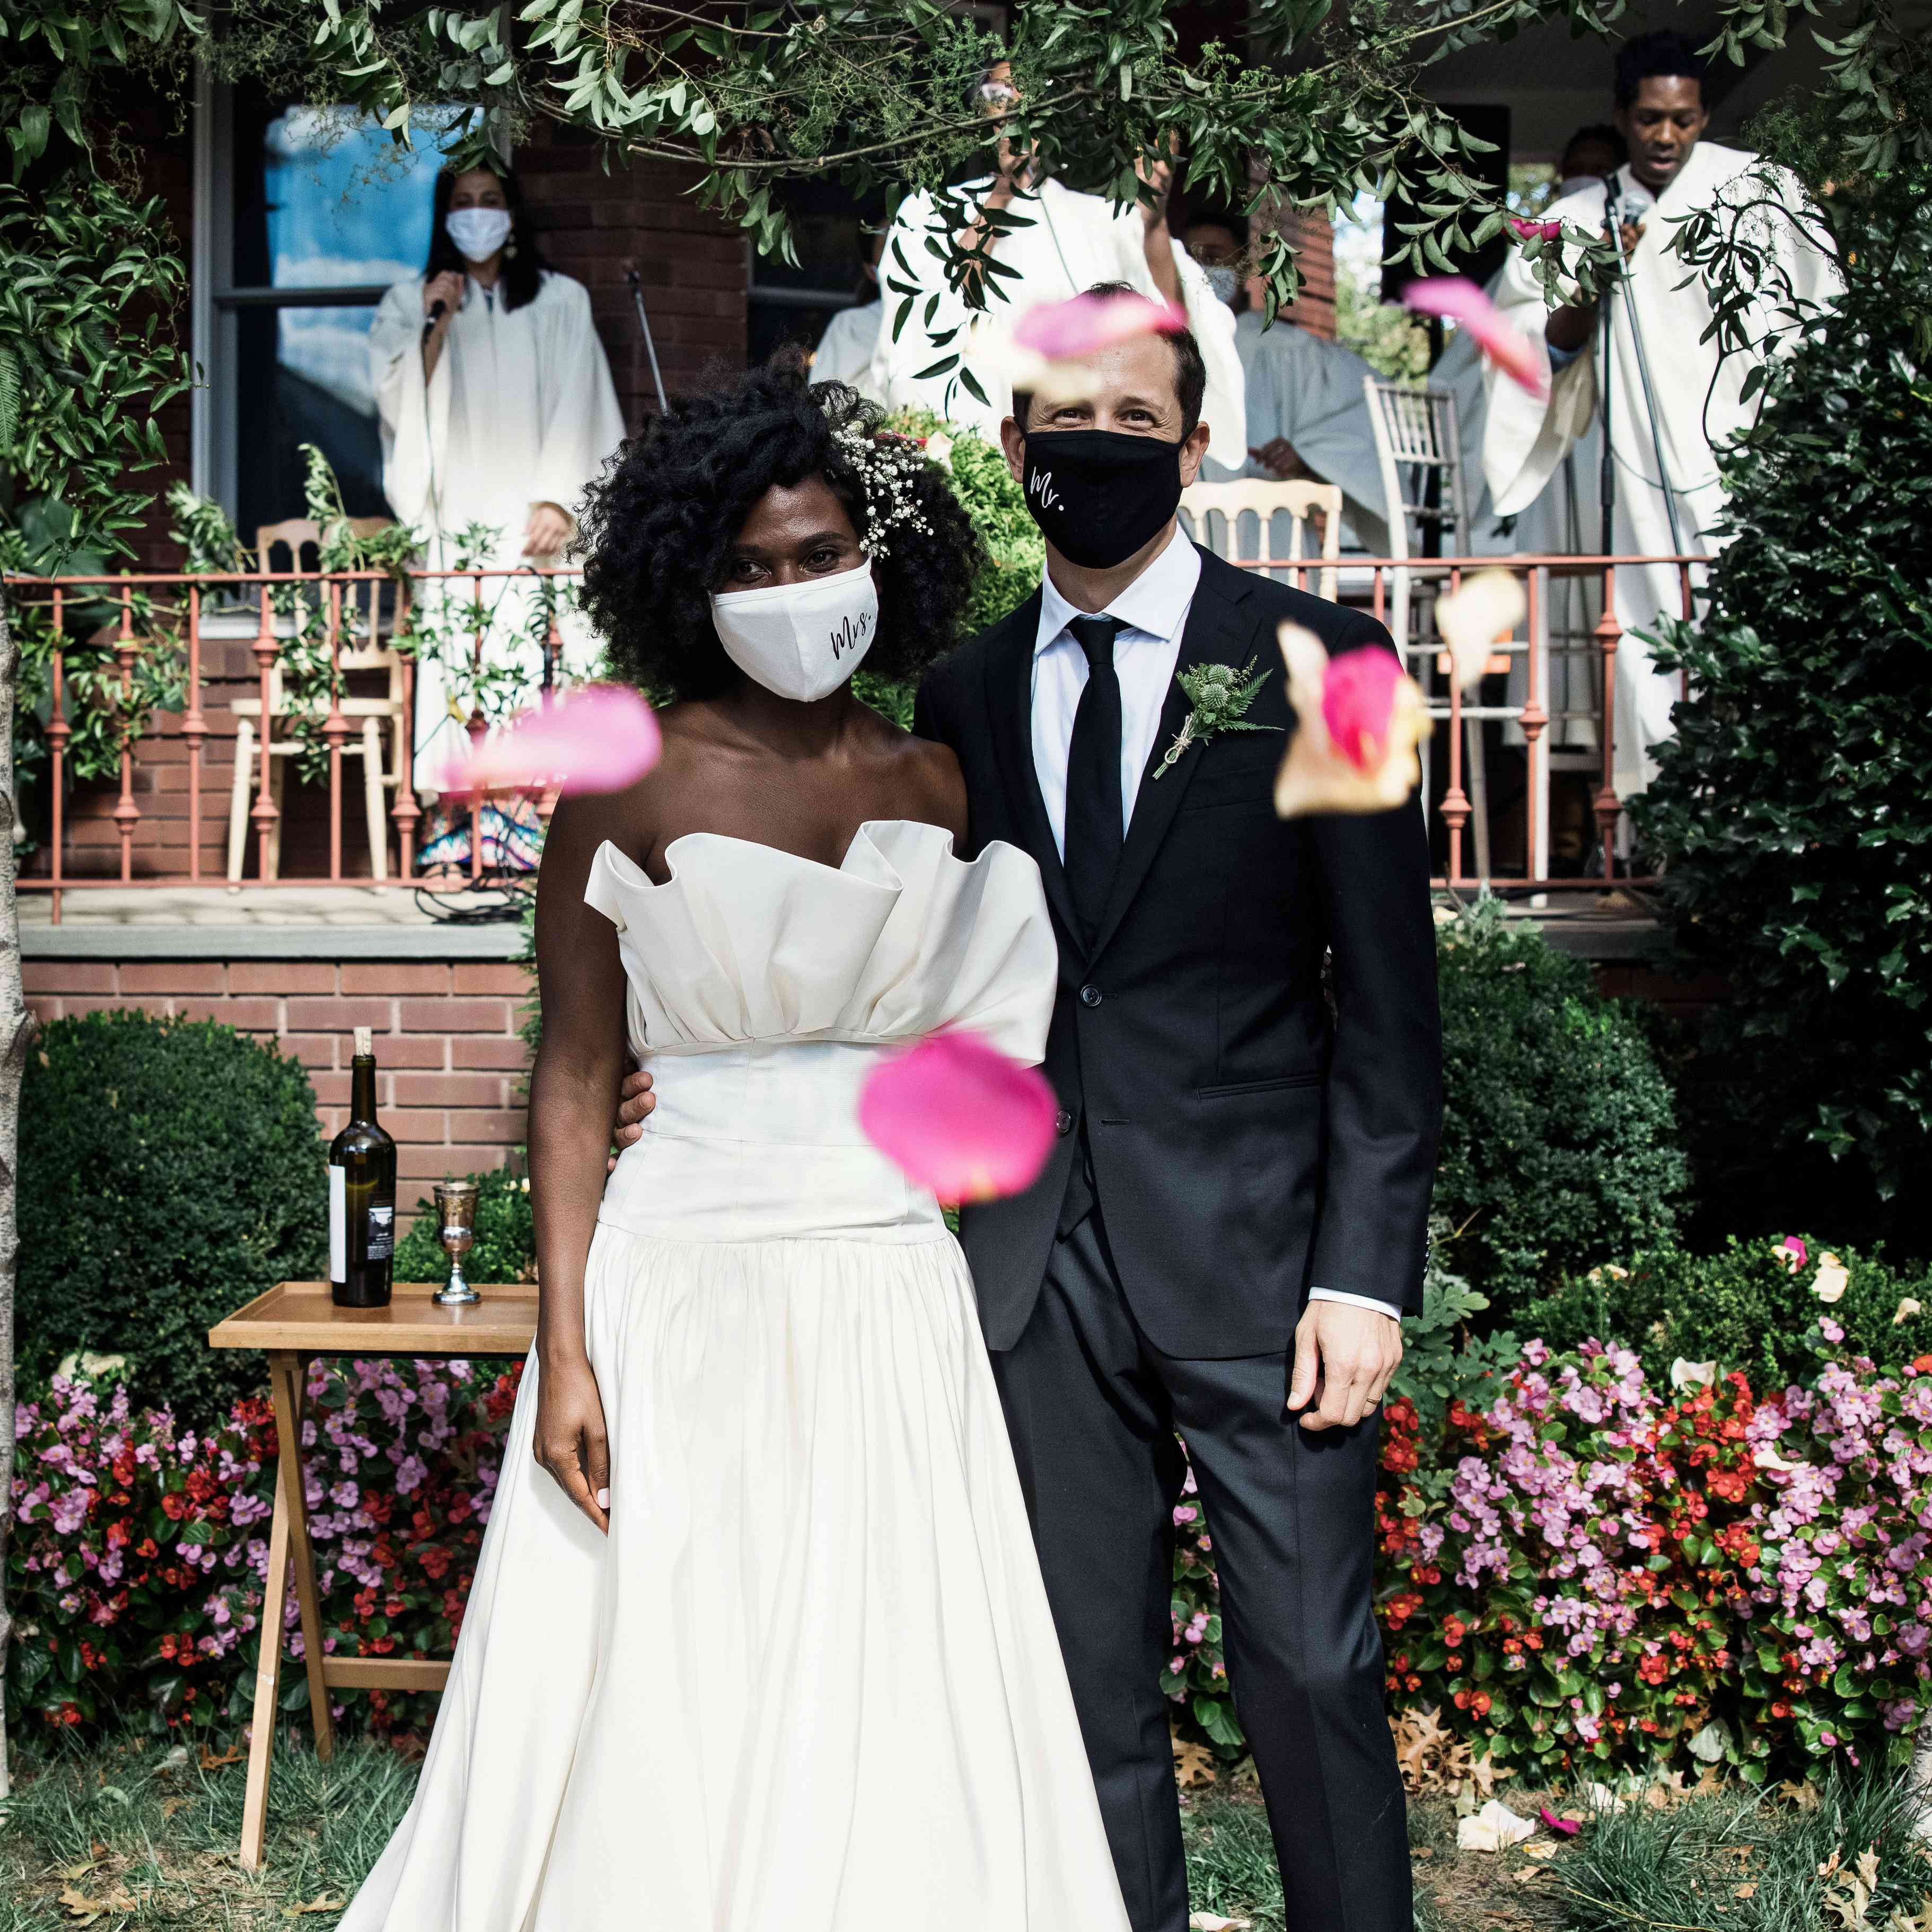 The couple with masks